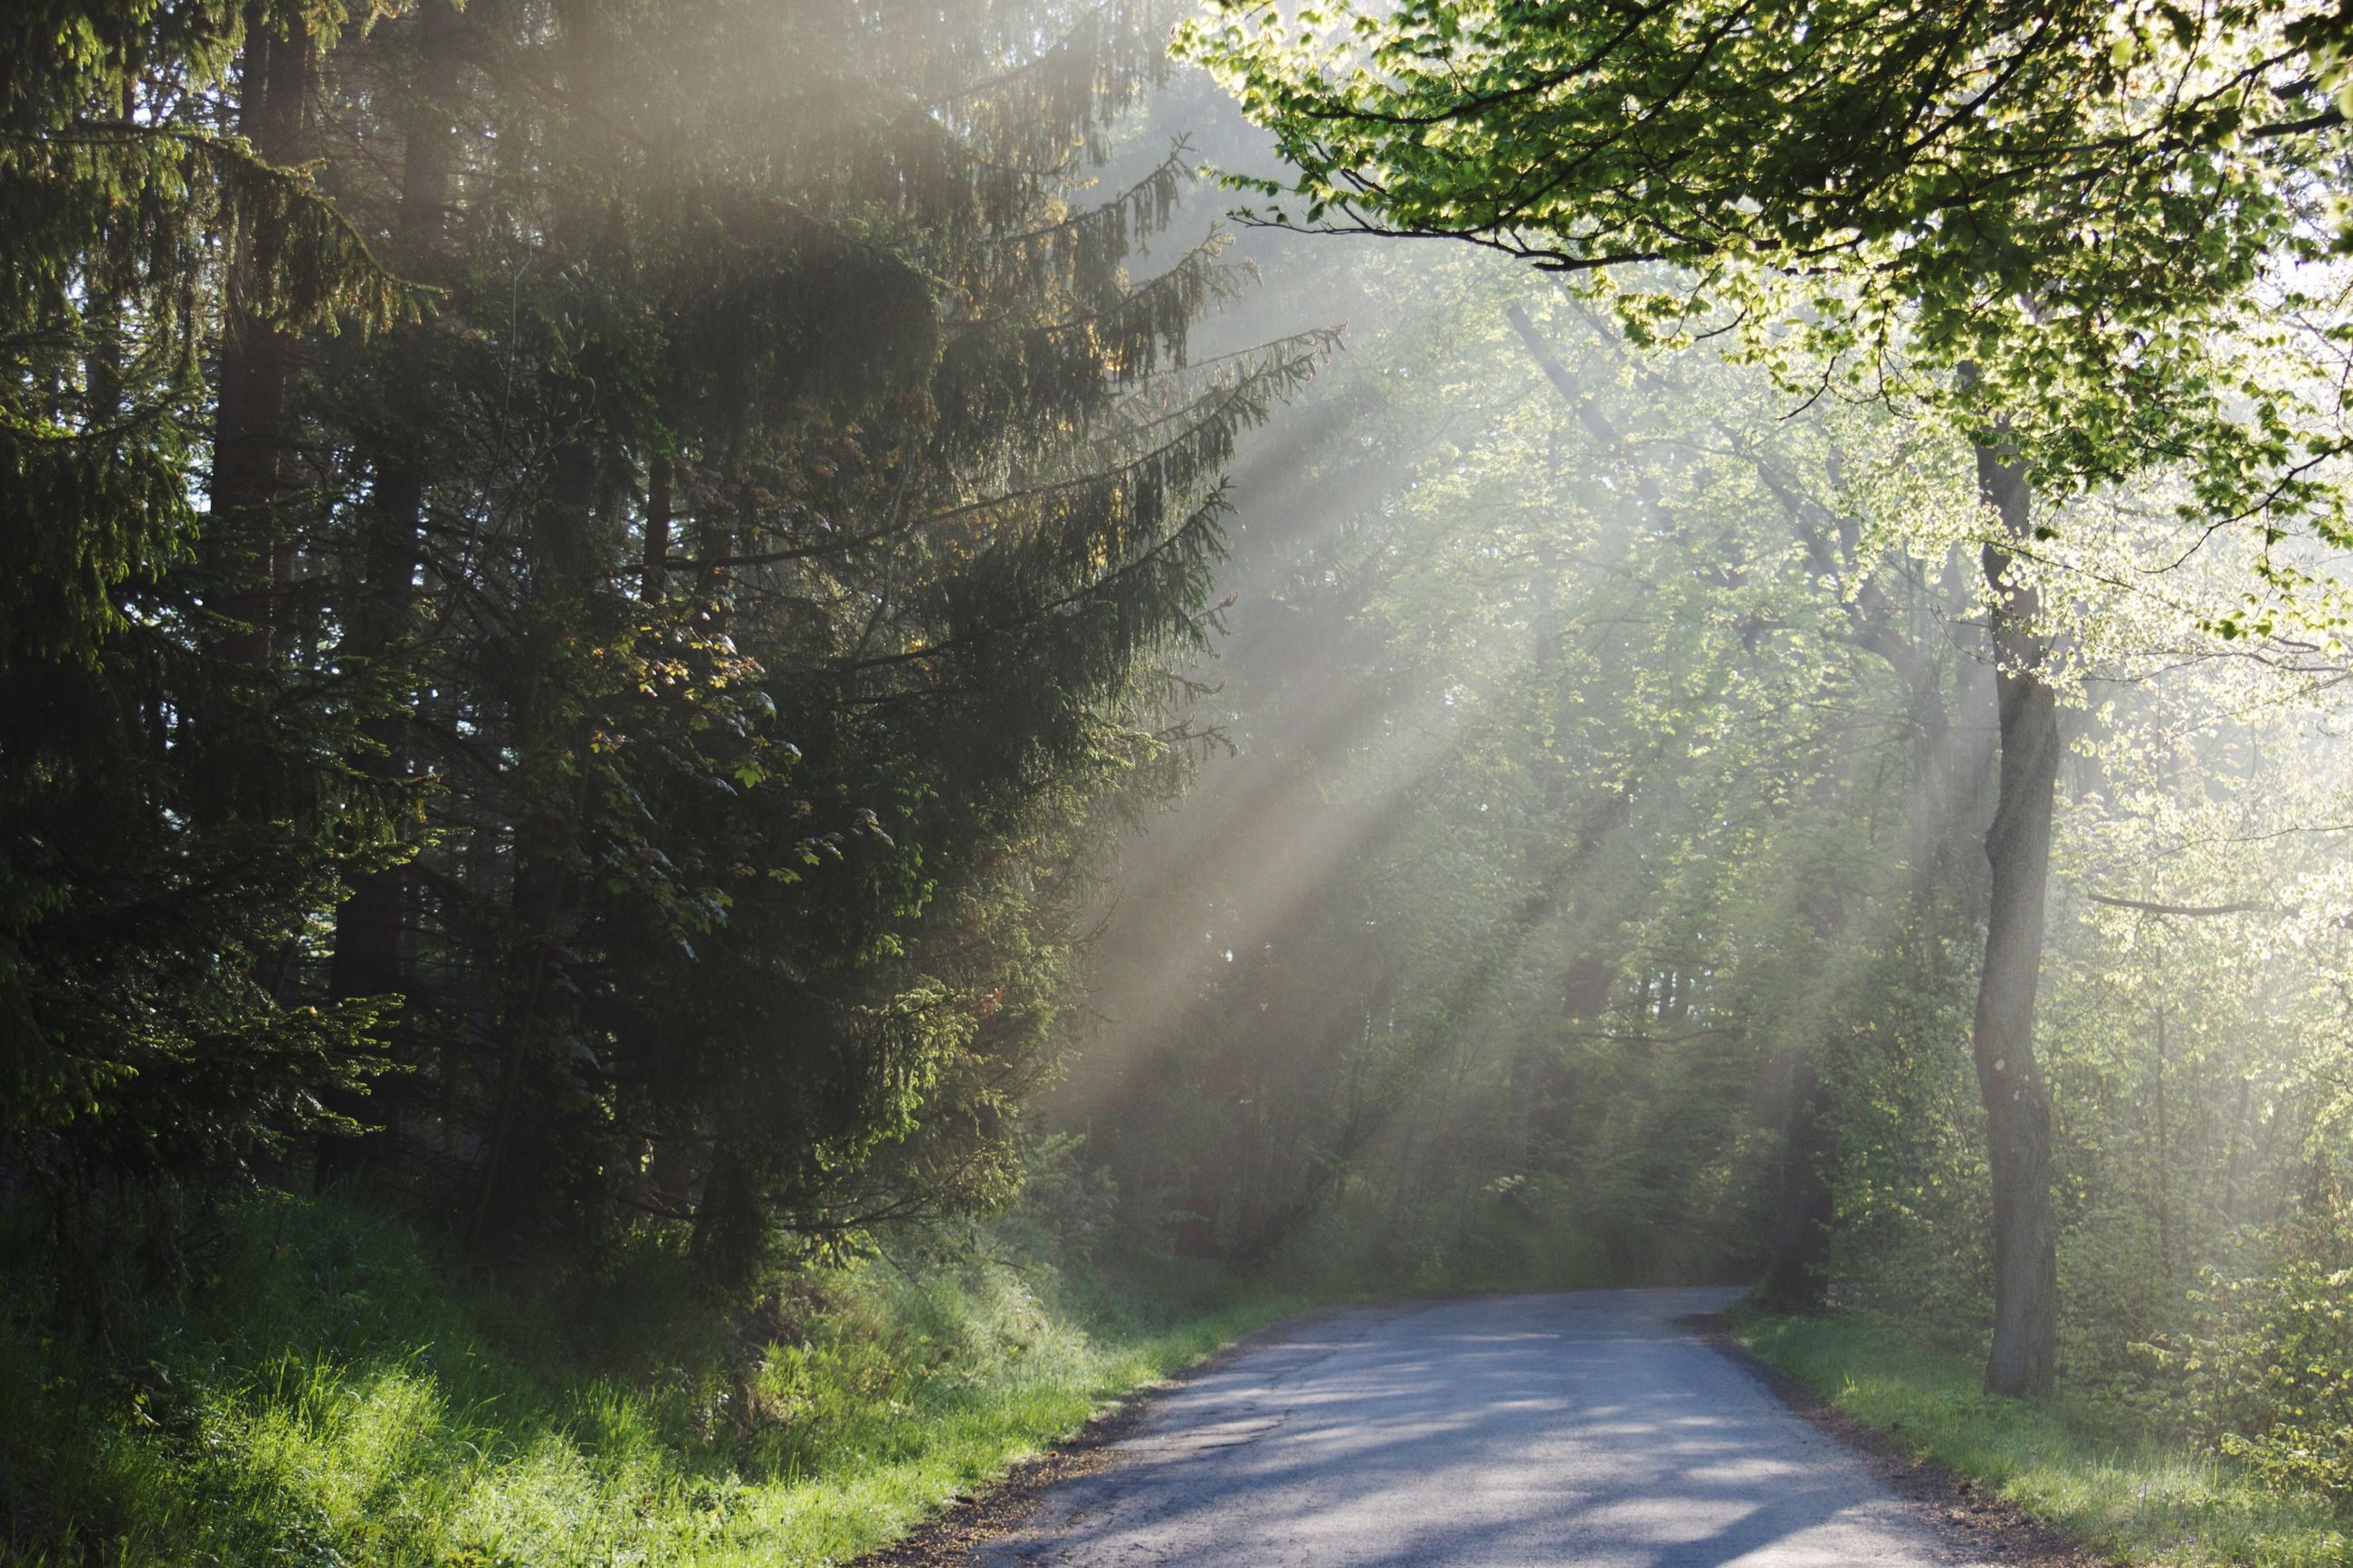 tree, nature, tranquility, day, the way forward, tranquil scene, tree trunk, no people, scenics, forest, growth, outdoors, sunlight, beauty in nature, landscape, road, plant, branch, grass